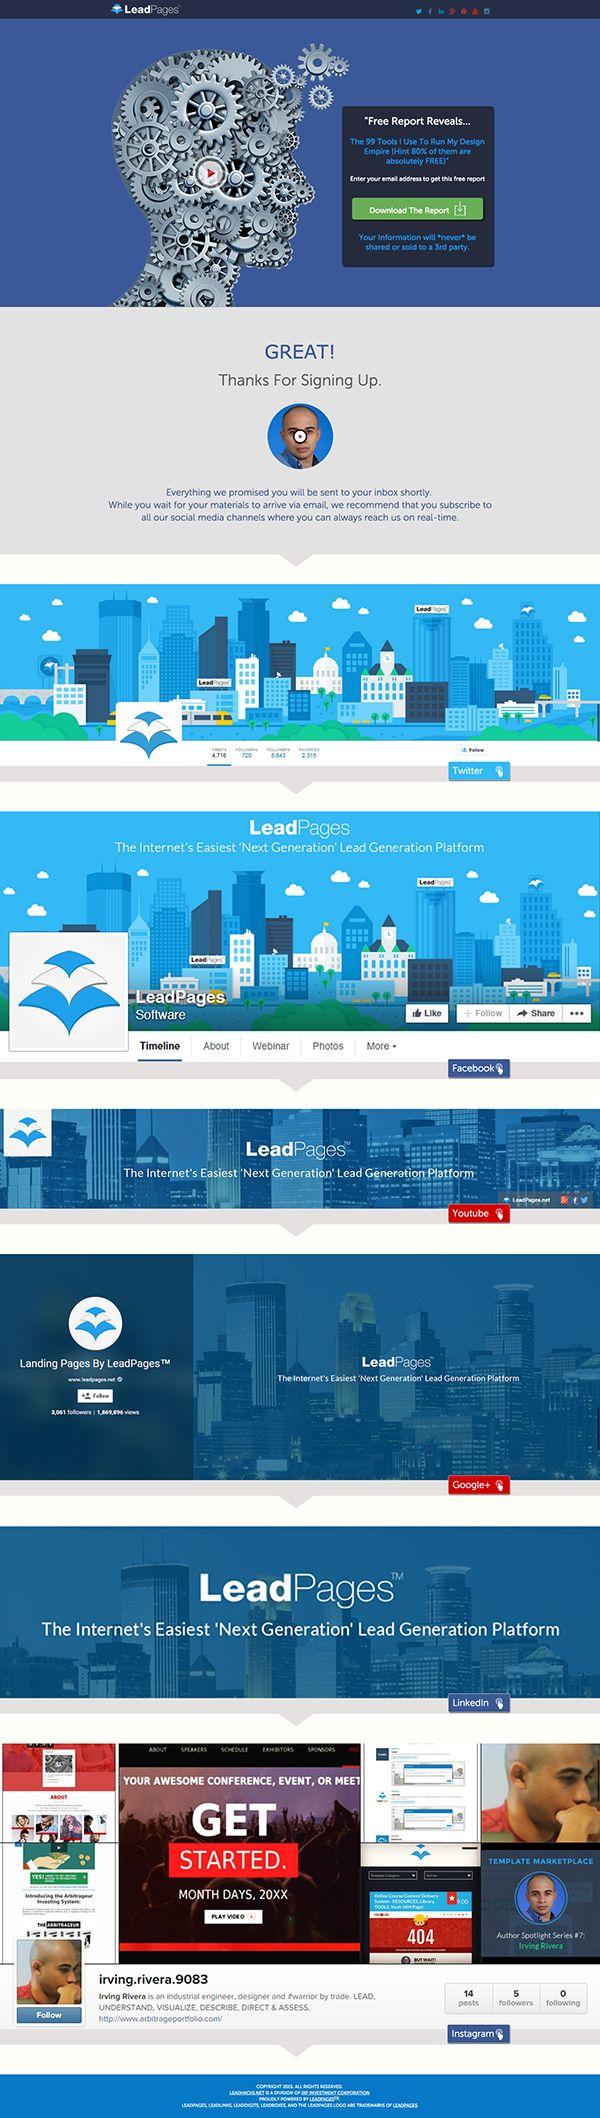 13 best leadpages templates images on pinterest design facebook lead magnetbribe email capture landing page material design leadpages template pronofoot35fo Choice Image